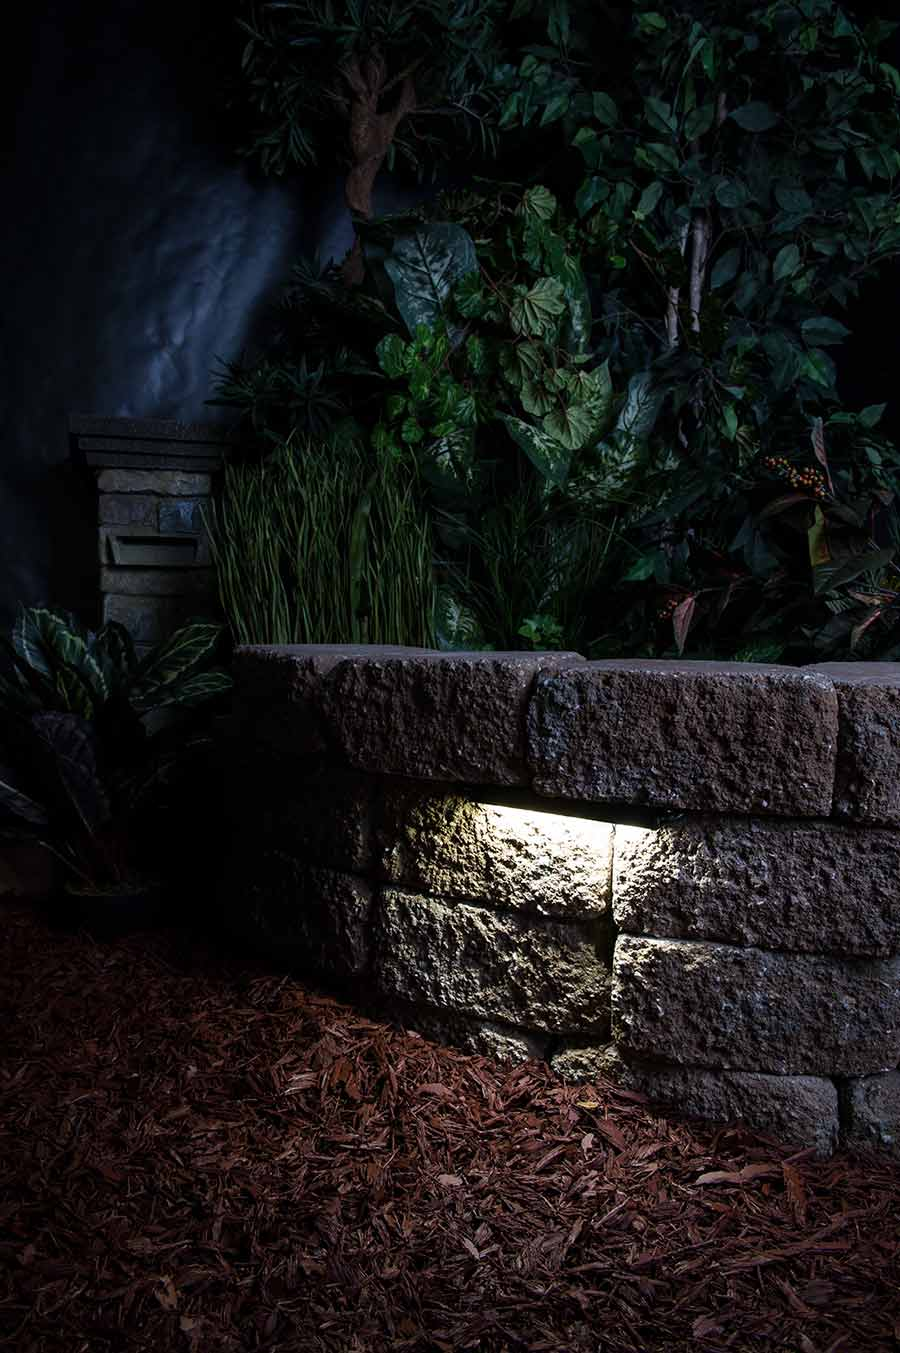 Outdoor Led Landscape Lighting picture on Outdoor Led Landscape Lighting1911 with Outdoor Led Landscape Lighting, Outdoor Lighting ideas d583a4f8625315510cecc55fada3bfad